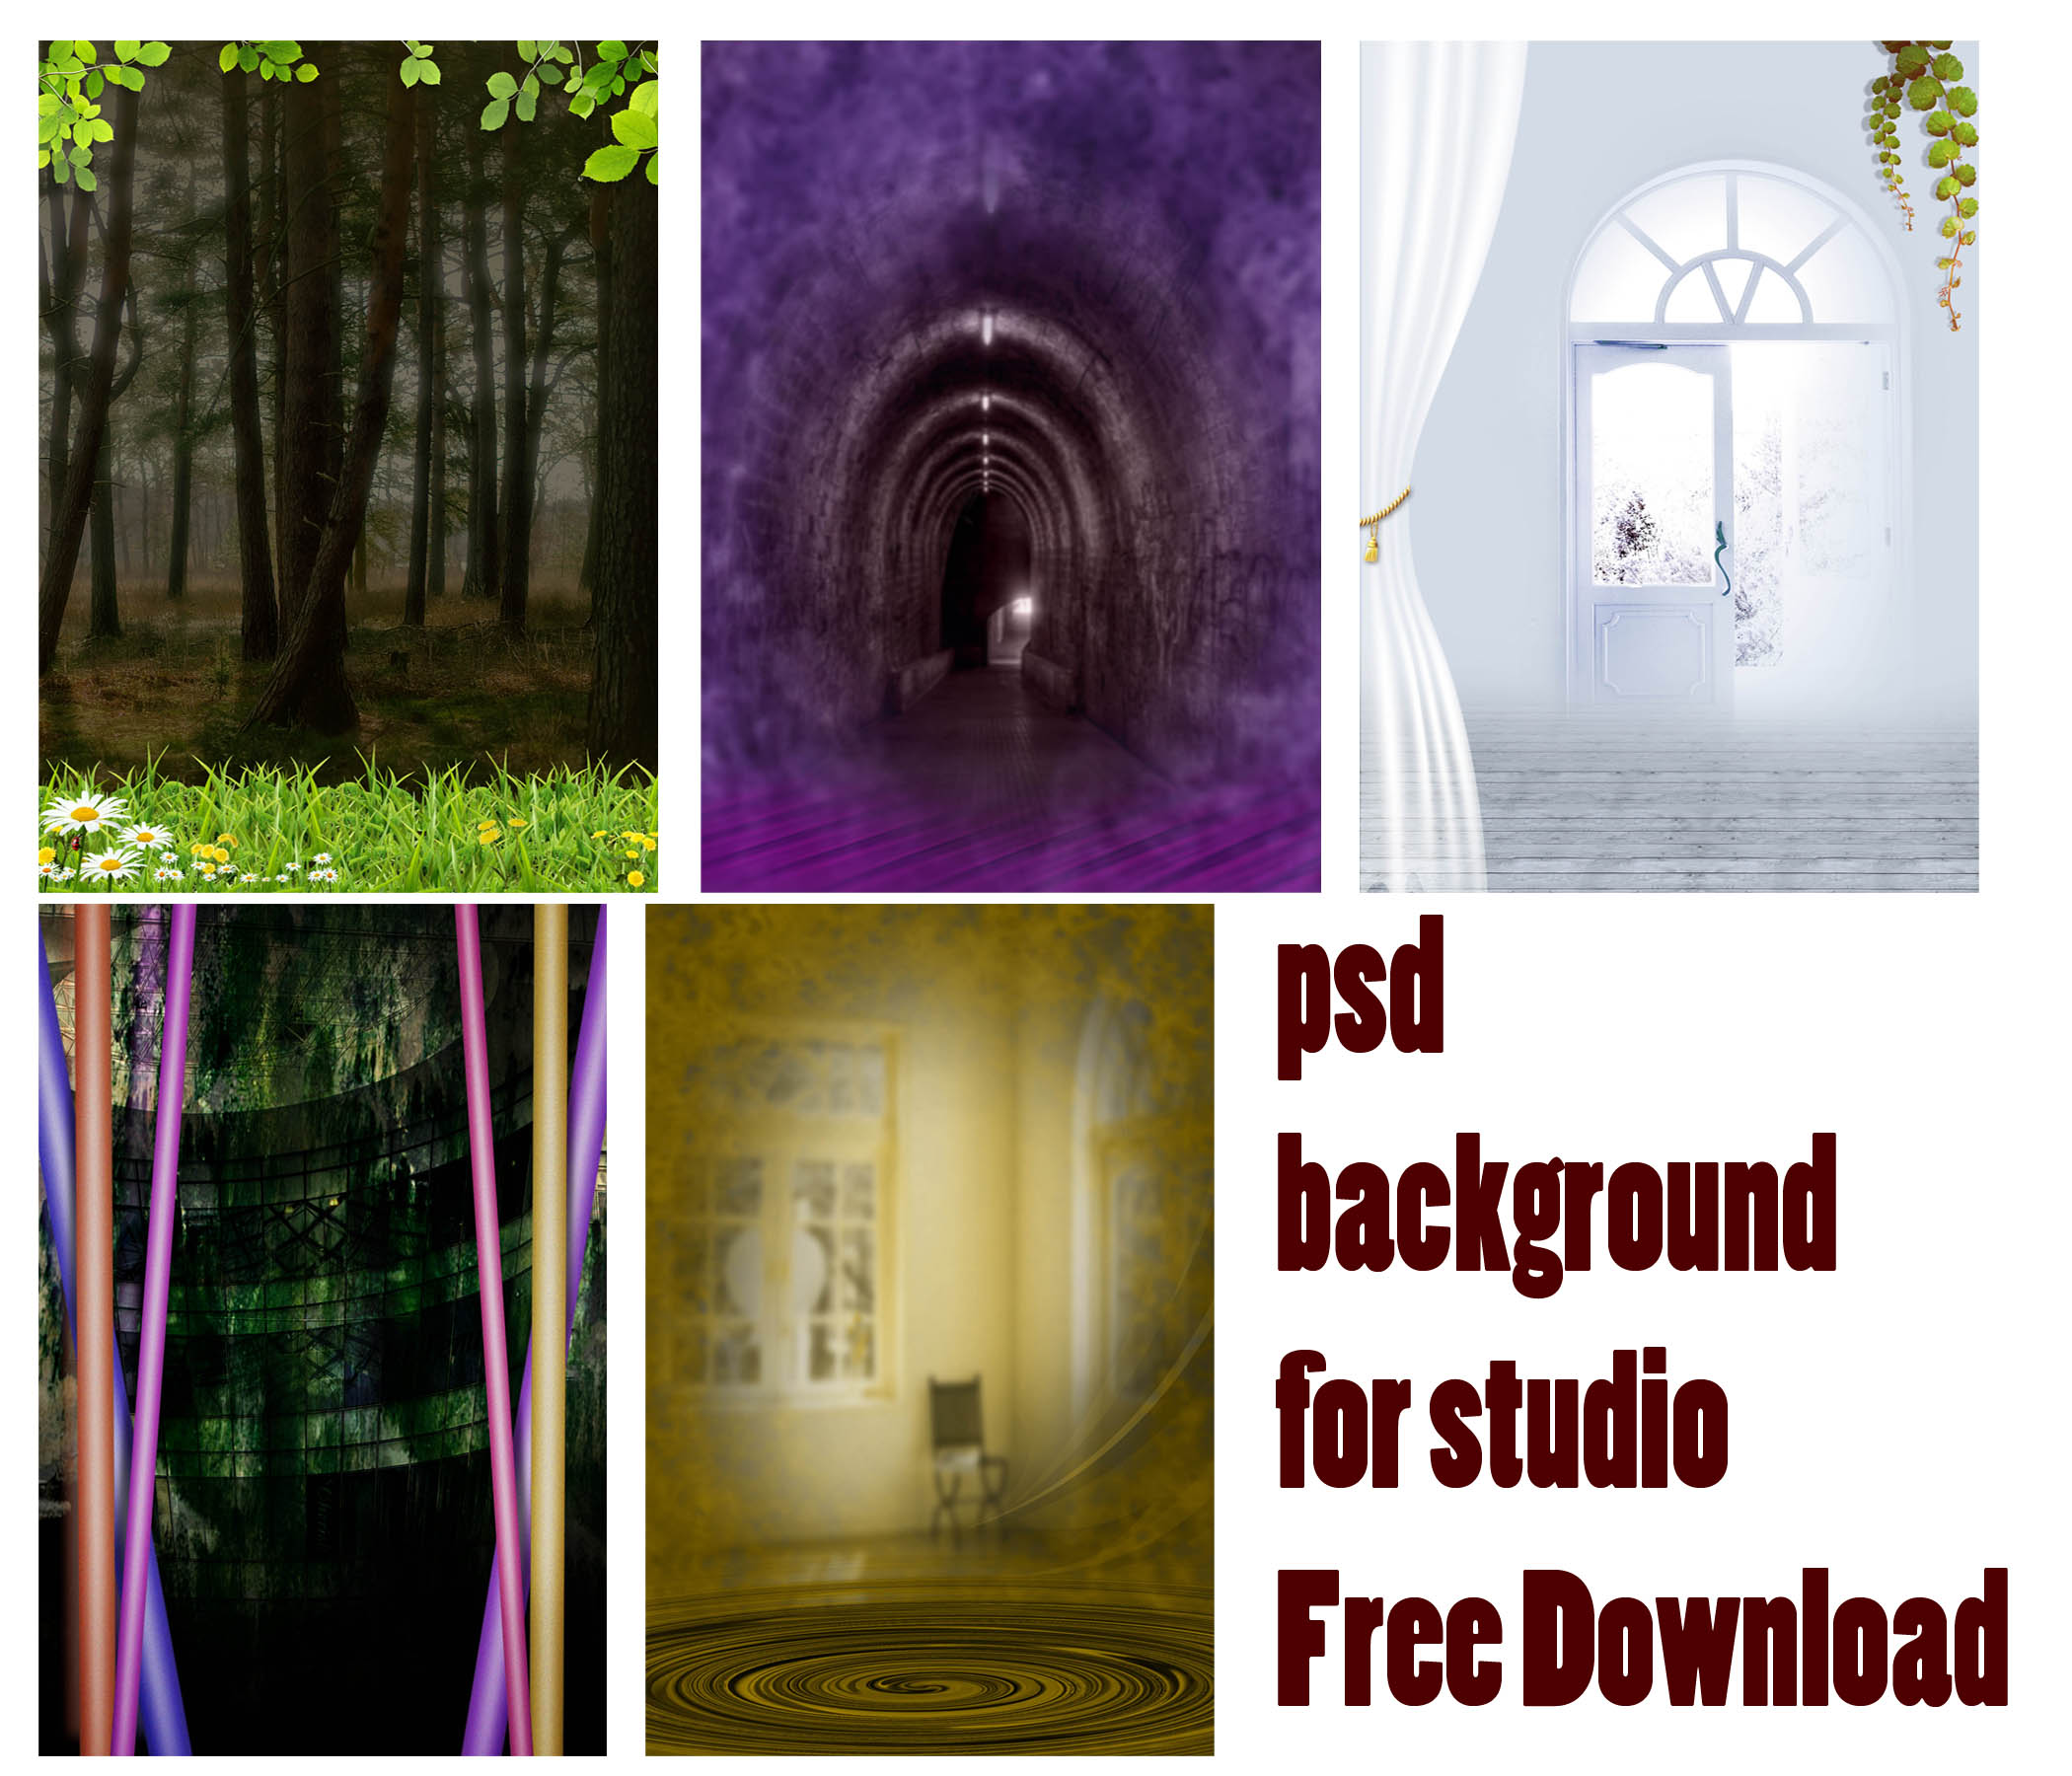 studio psd background